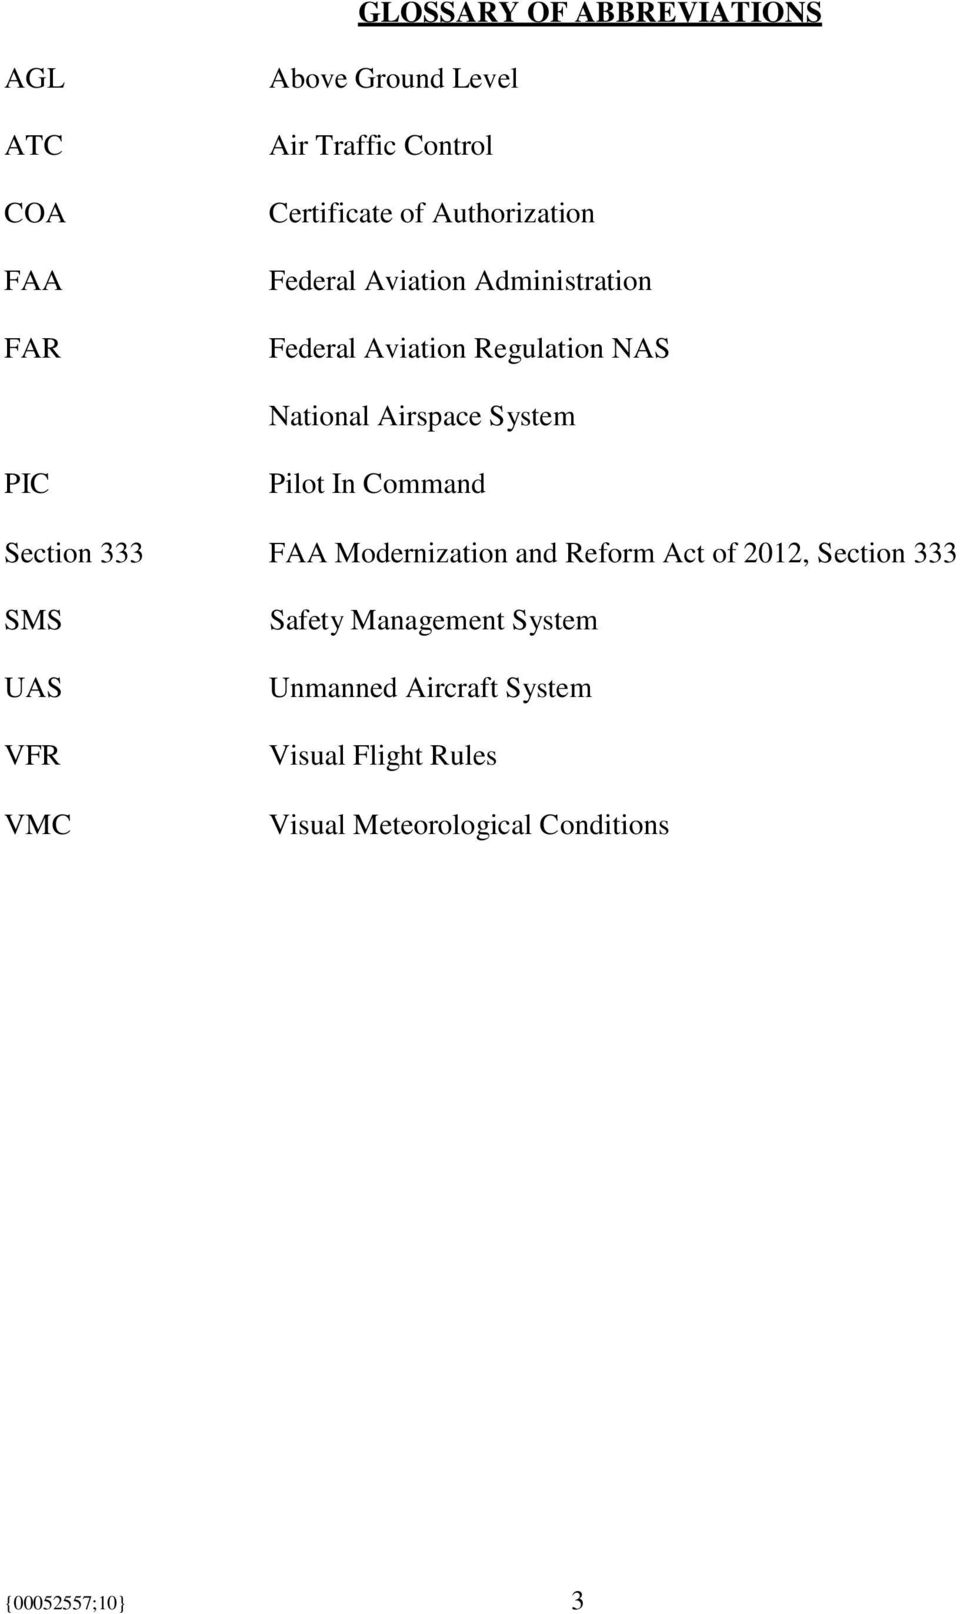 PIC Pilot In Command Section 333 FAA Modernization and Reform Act of 2012, Section 333 SMS UAS VFR VMC